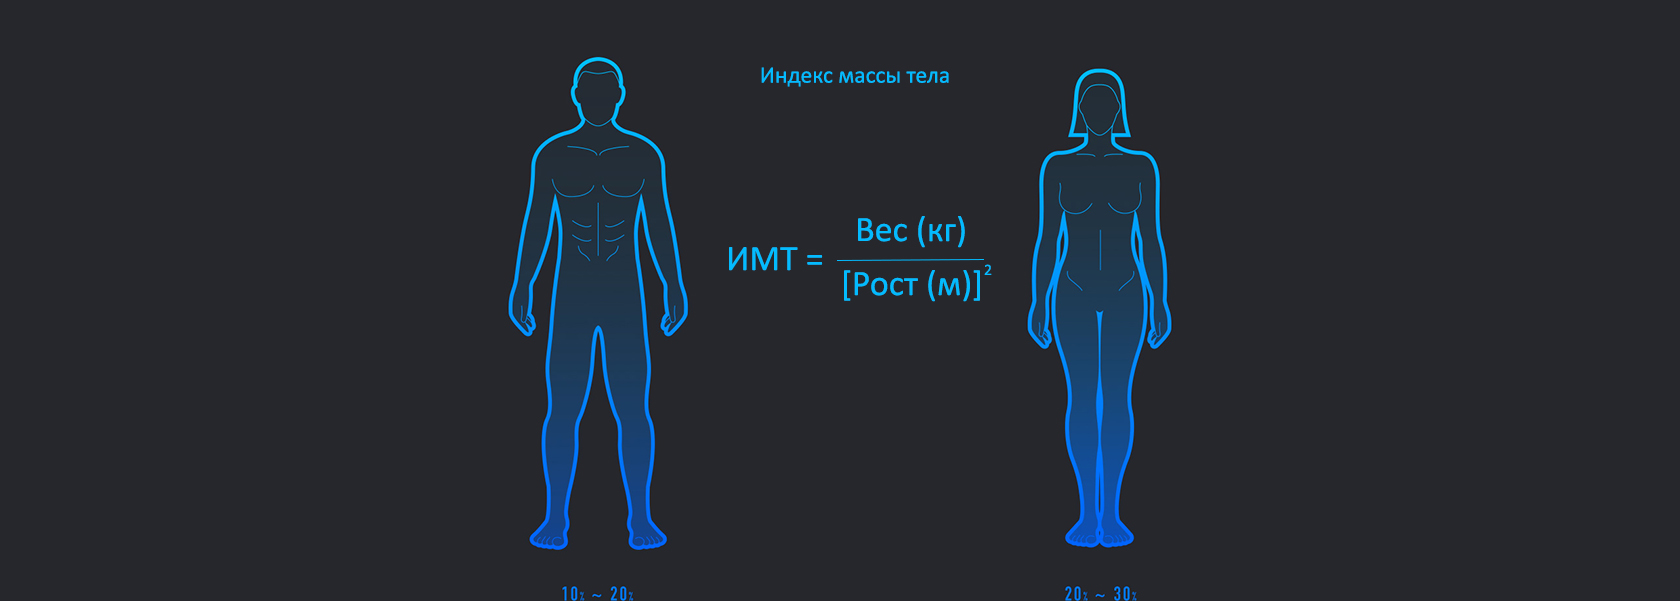 Смарт-весы Xiaomi Body Composition Scales